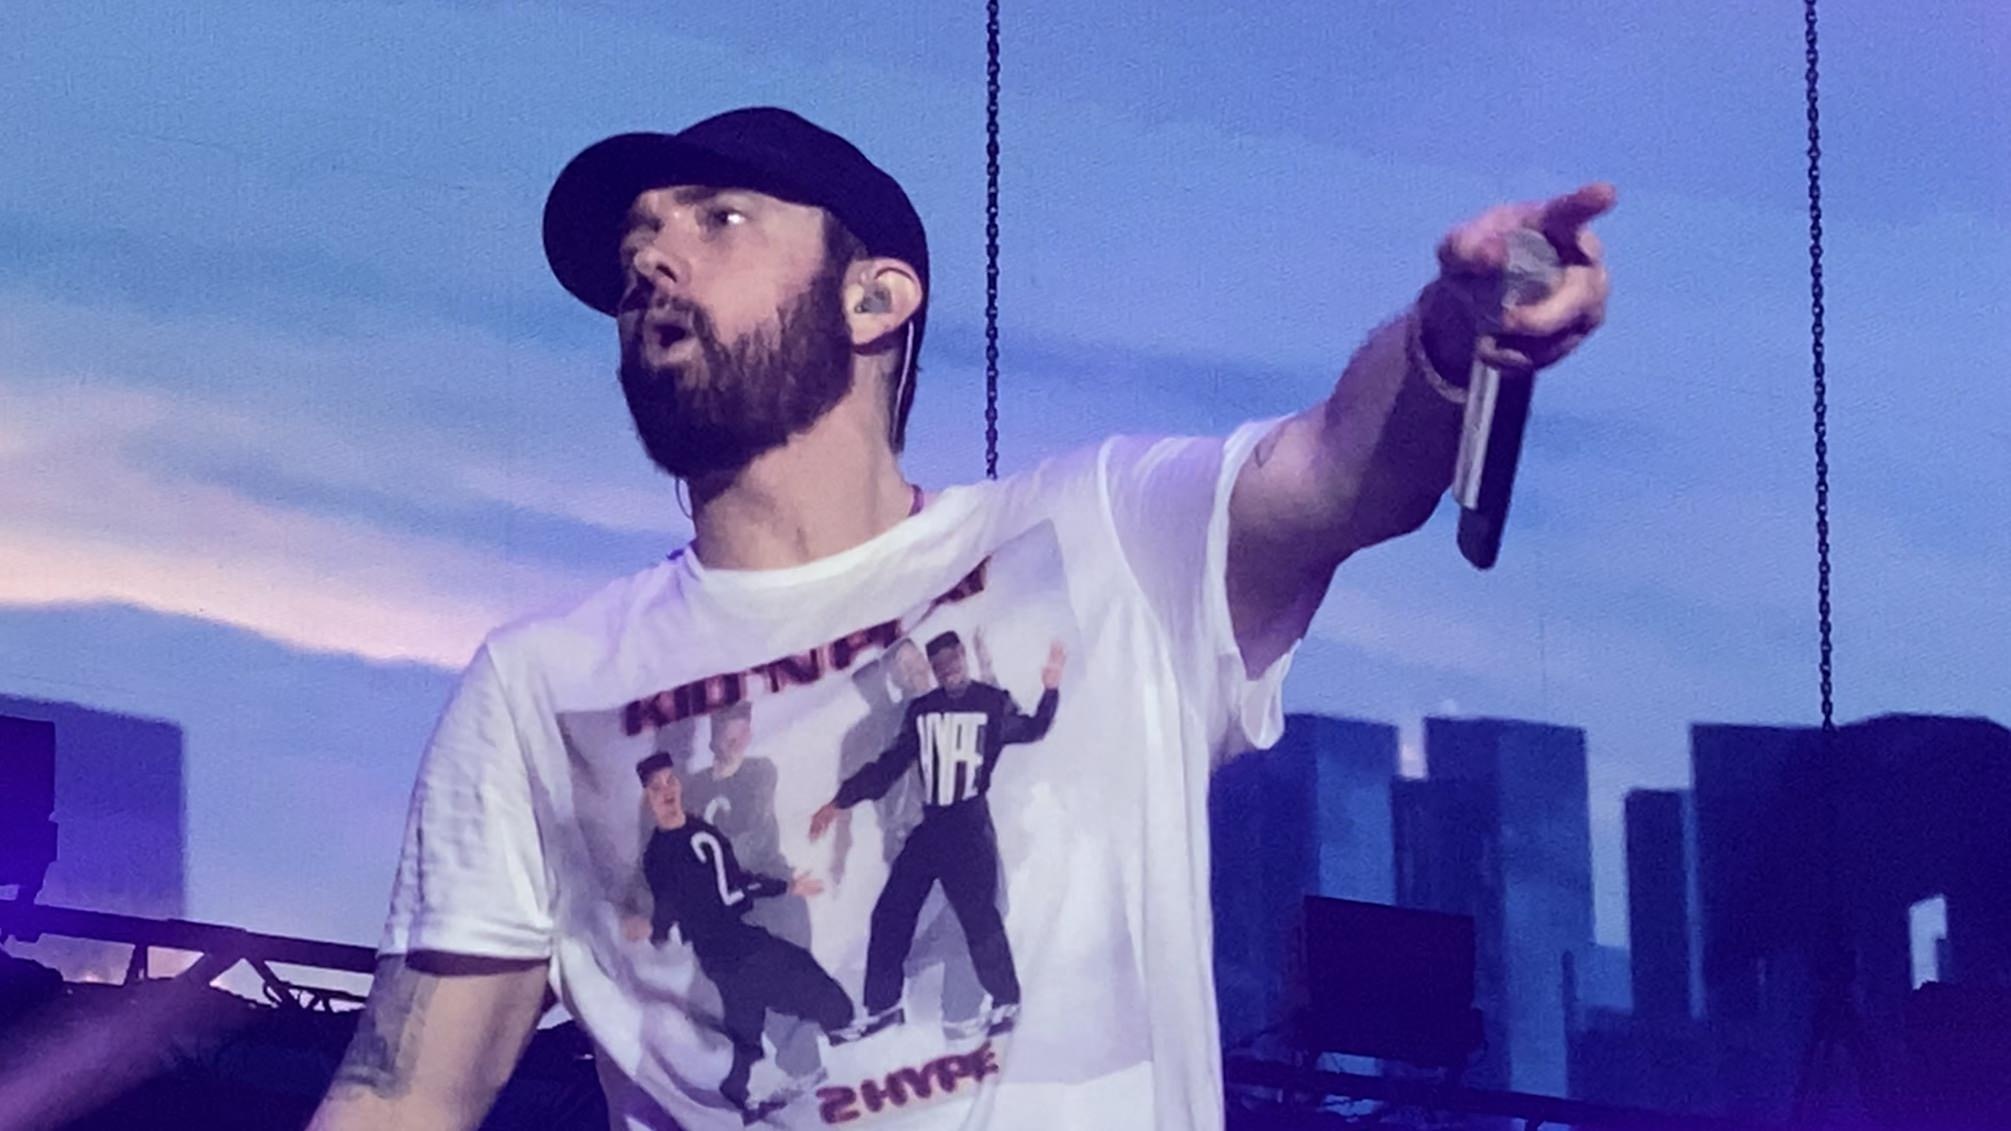 Eminem Live at Abu Dhabi 2019